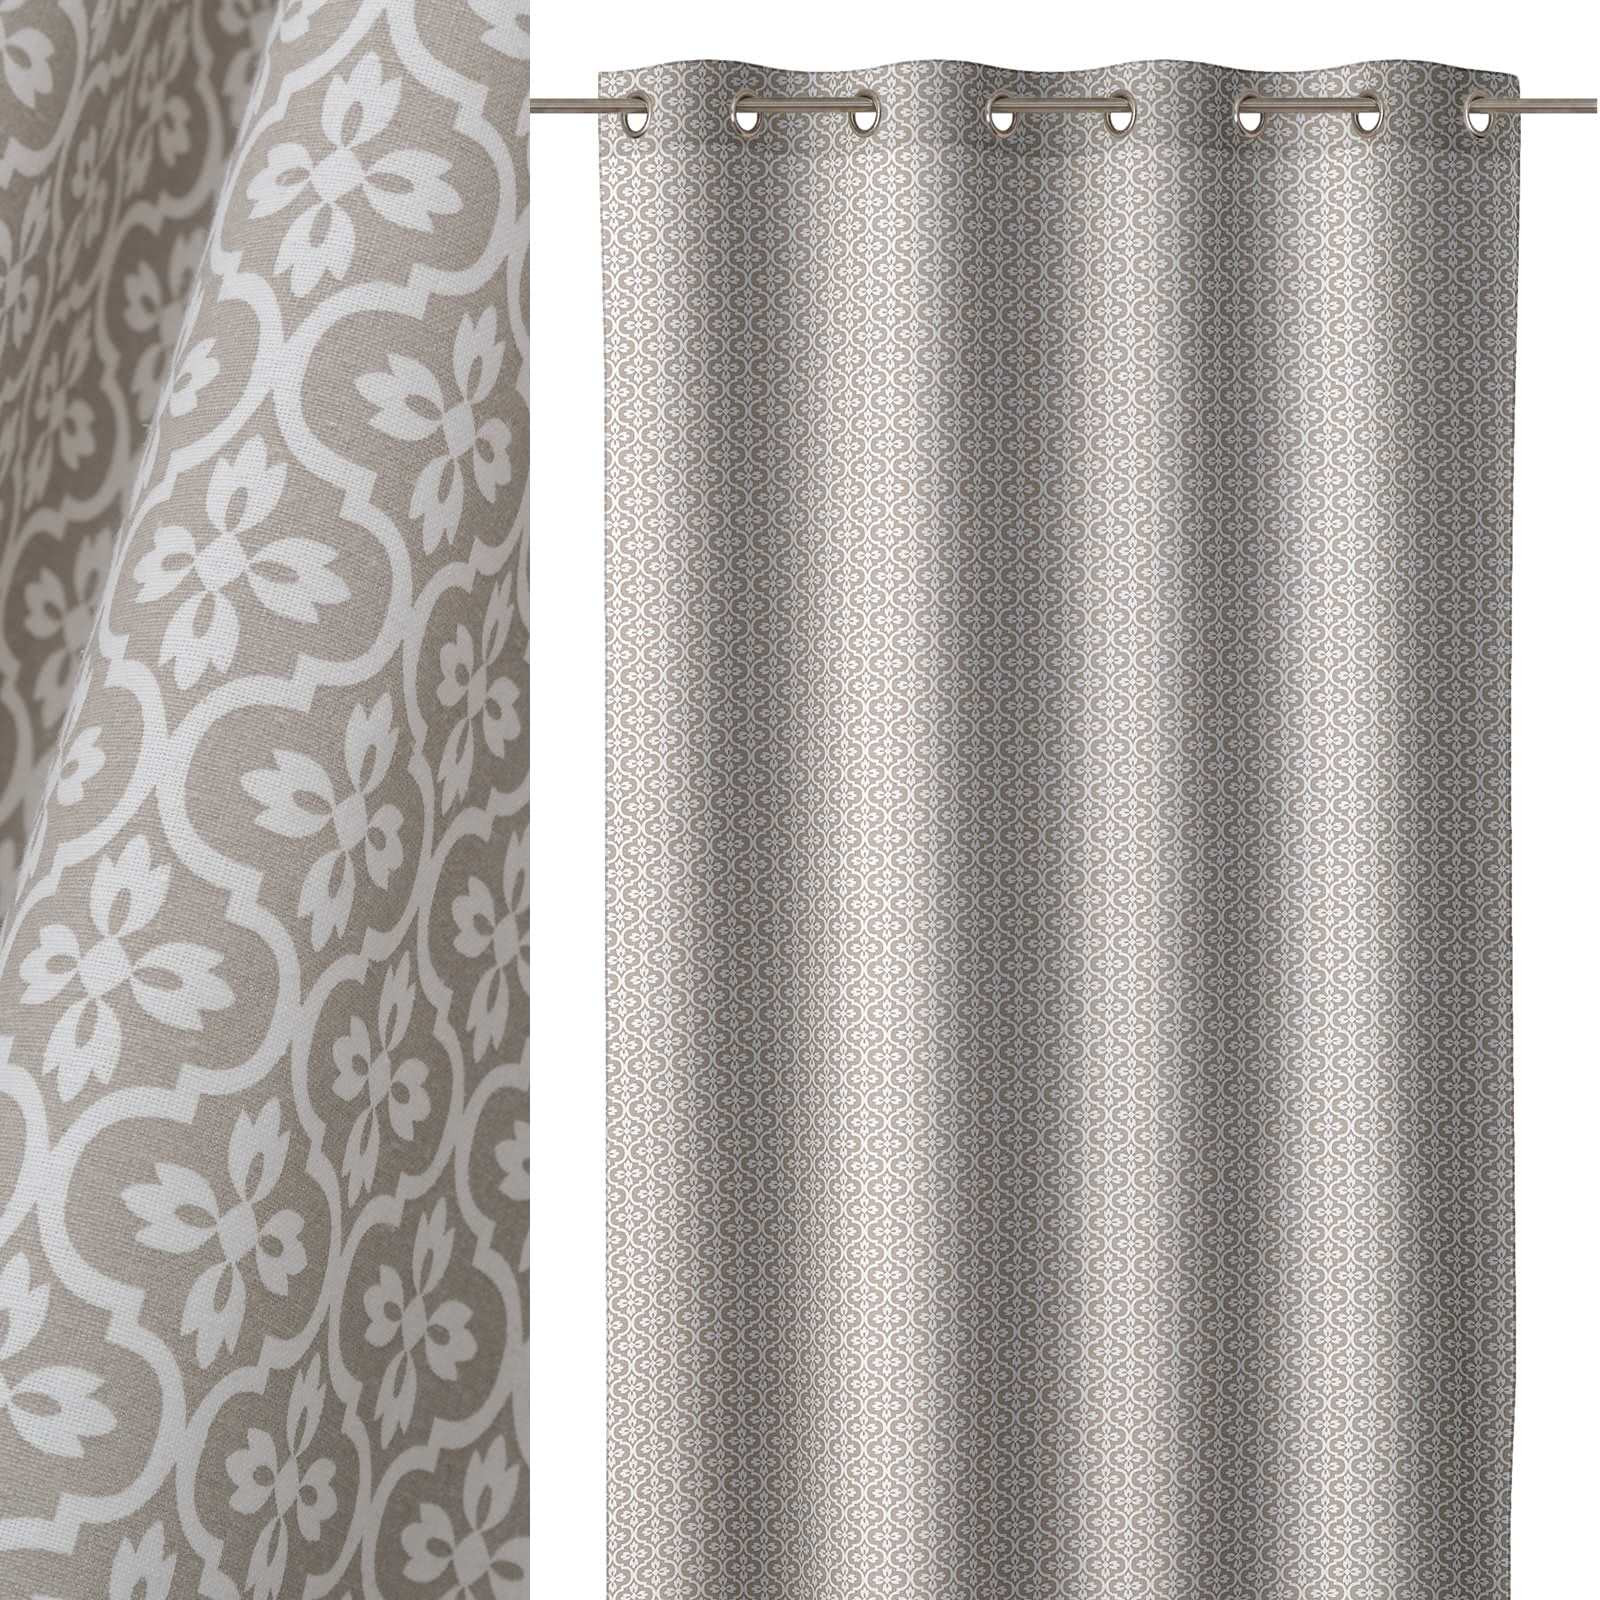 Cortina de 140x260 moderno gris de microfibra lola home for Cortinas salon gris